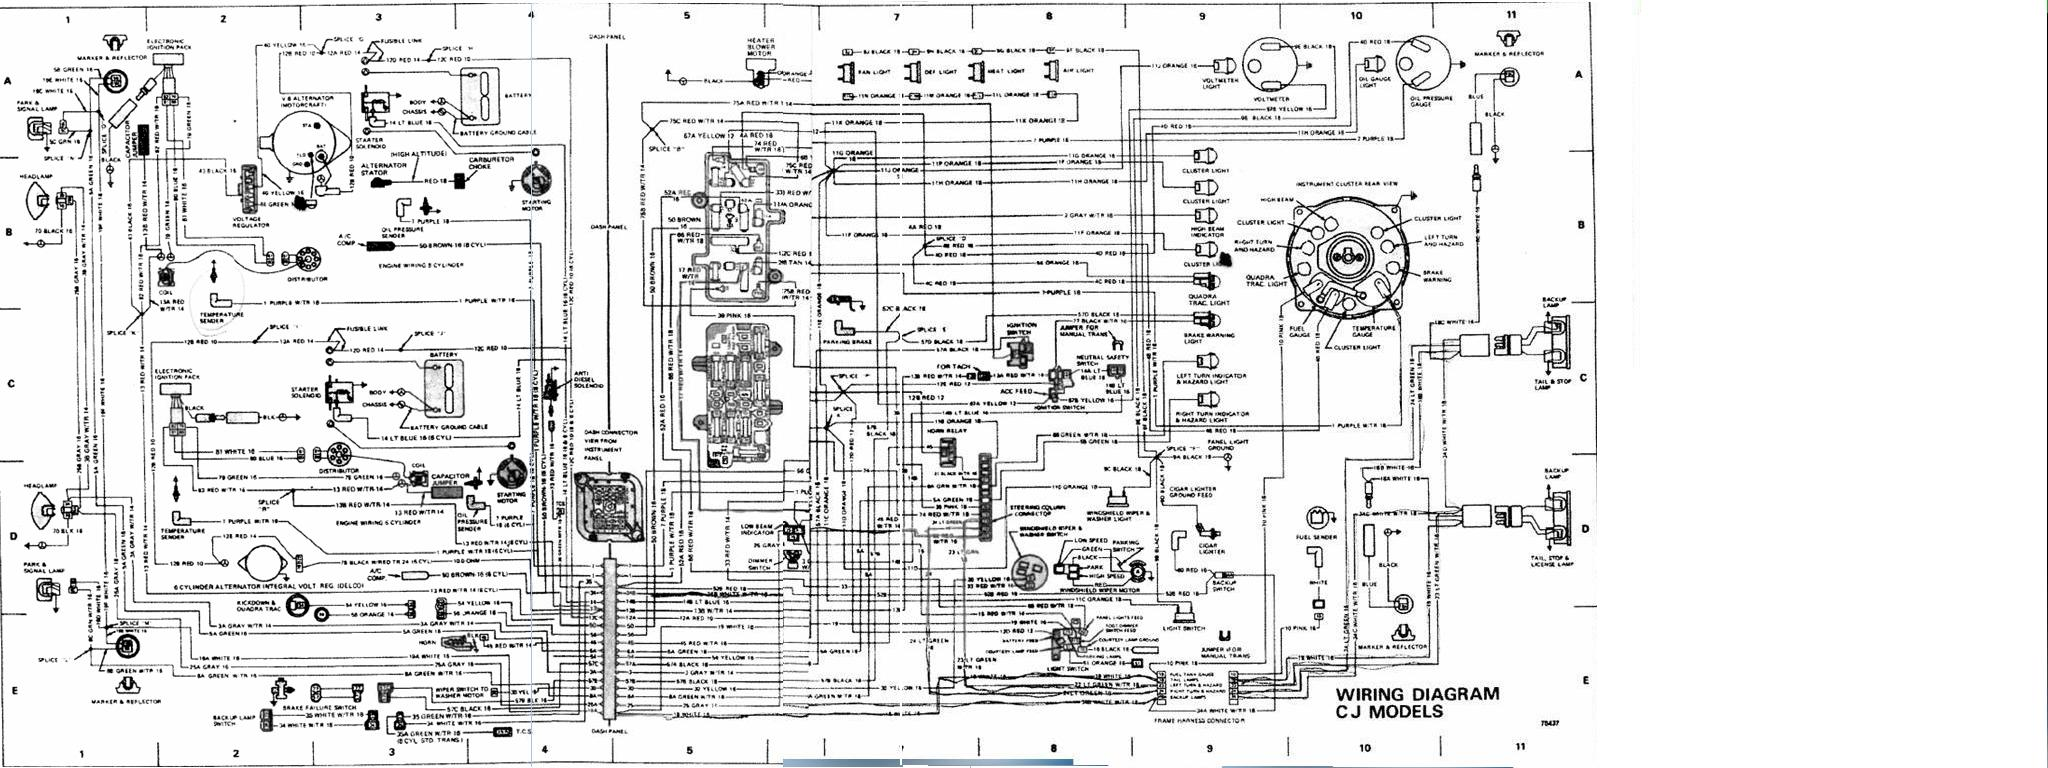 Jeep Cj7 Wiring Schematic - wiring diagram switches-page -  switches-page.albergoinsicilia.it | 1980 Cj7 Wiring Schematic |  | switches-page.albergoinsicilia.it